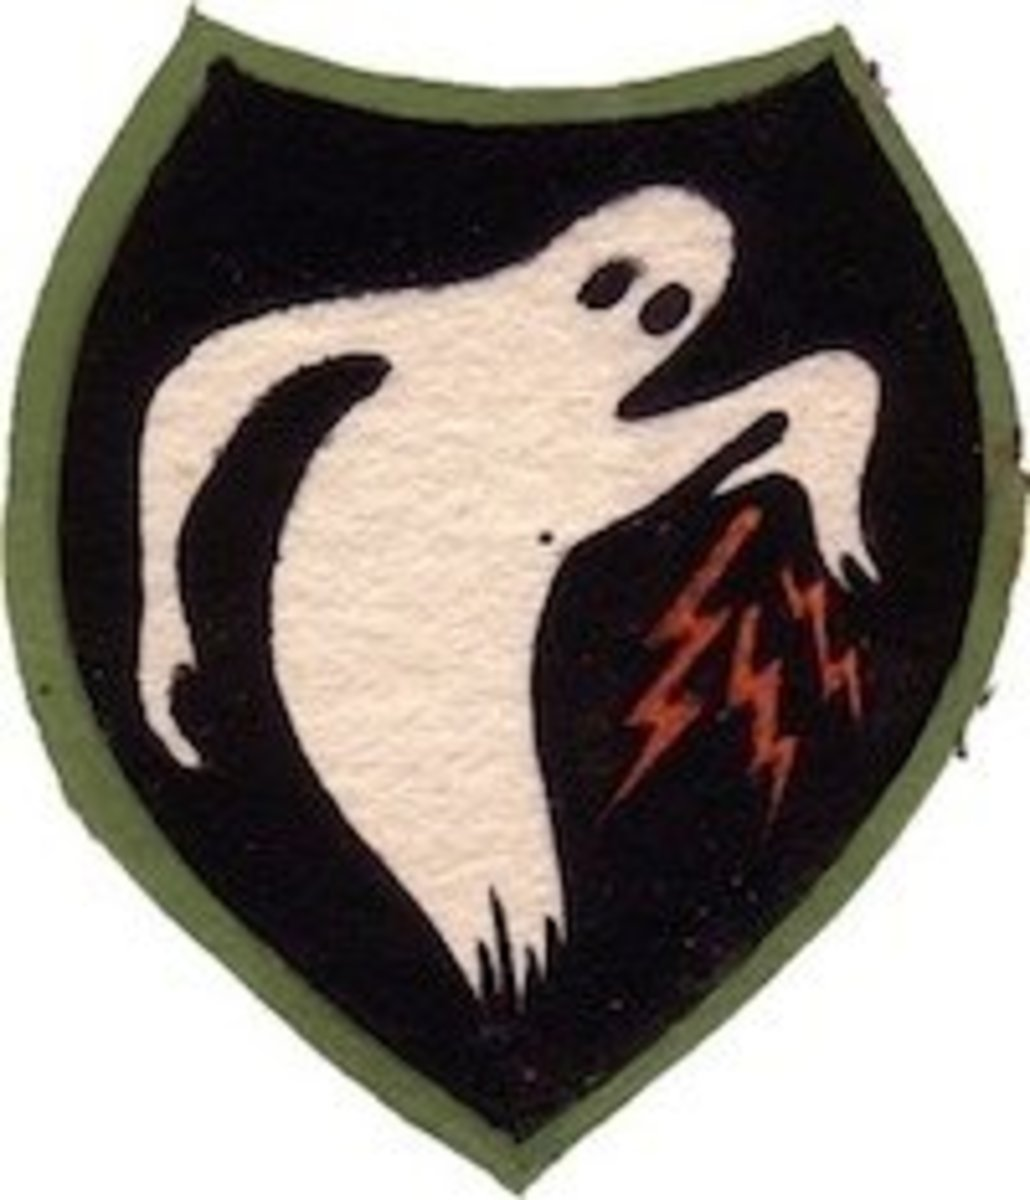 Insignia patch of 23rd Headquarters Special Troops, also known as the Ghost Army